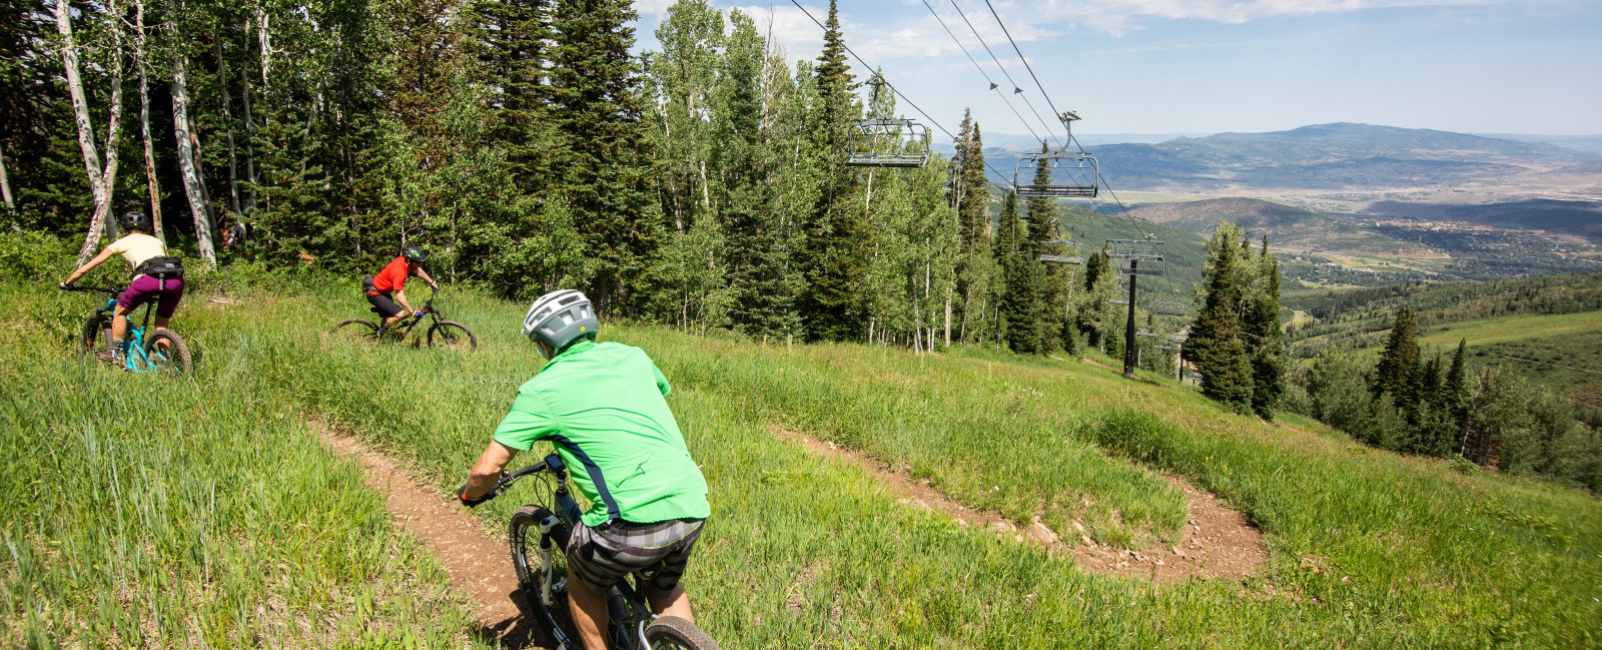 Go With the Flow: Lift-Served Mountain Bike Flow Trails at Utah Resorts